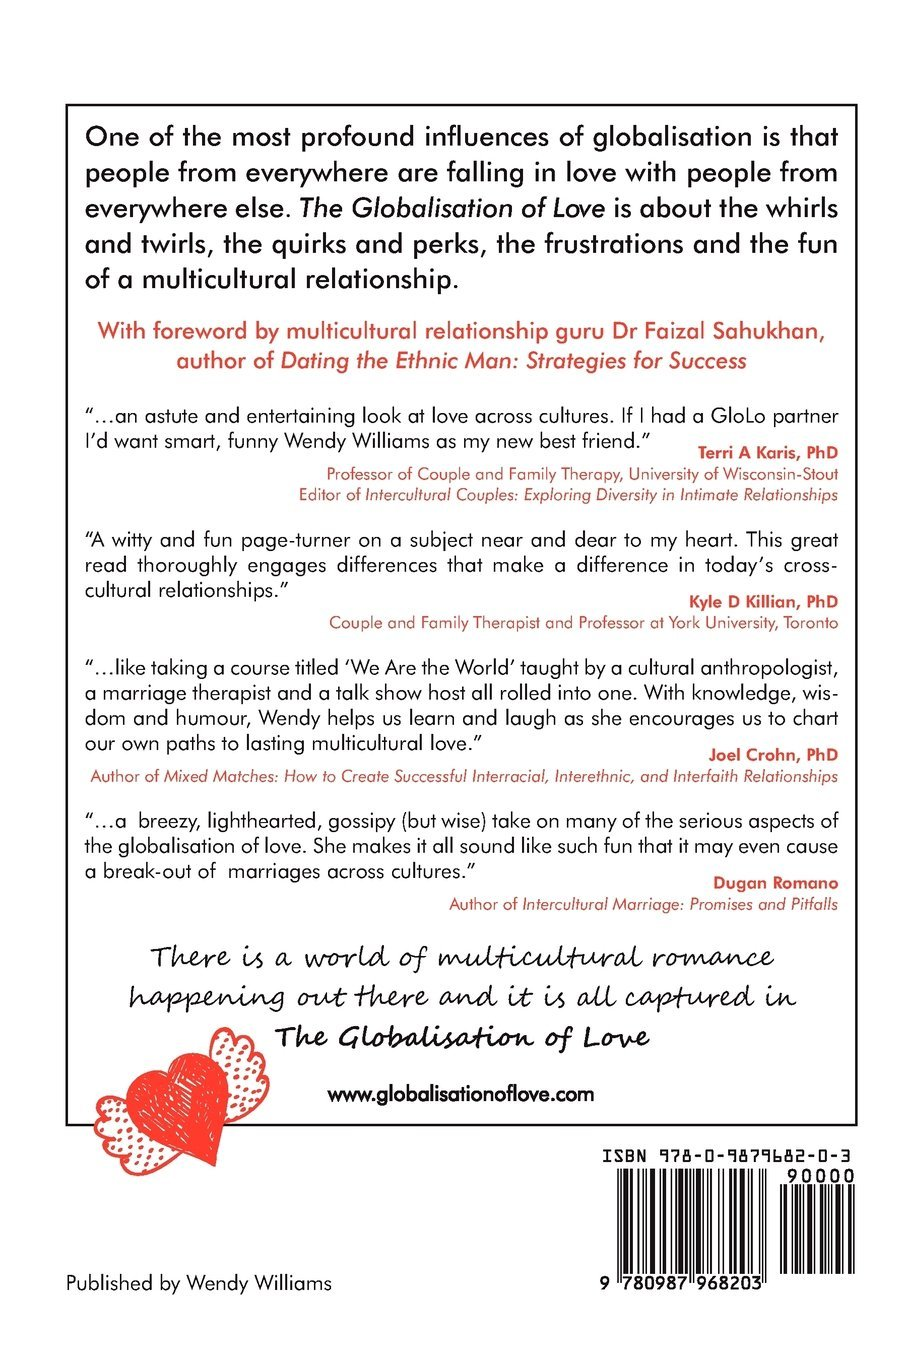 The Globalisation of Love: Wendy Williams: 9780987968203: Amazon.com: Books